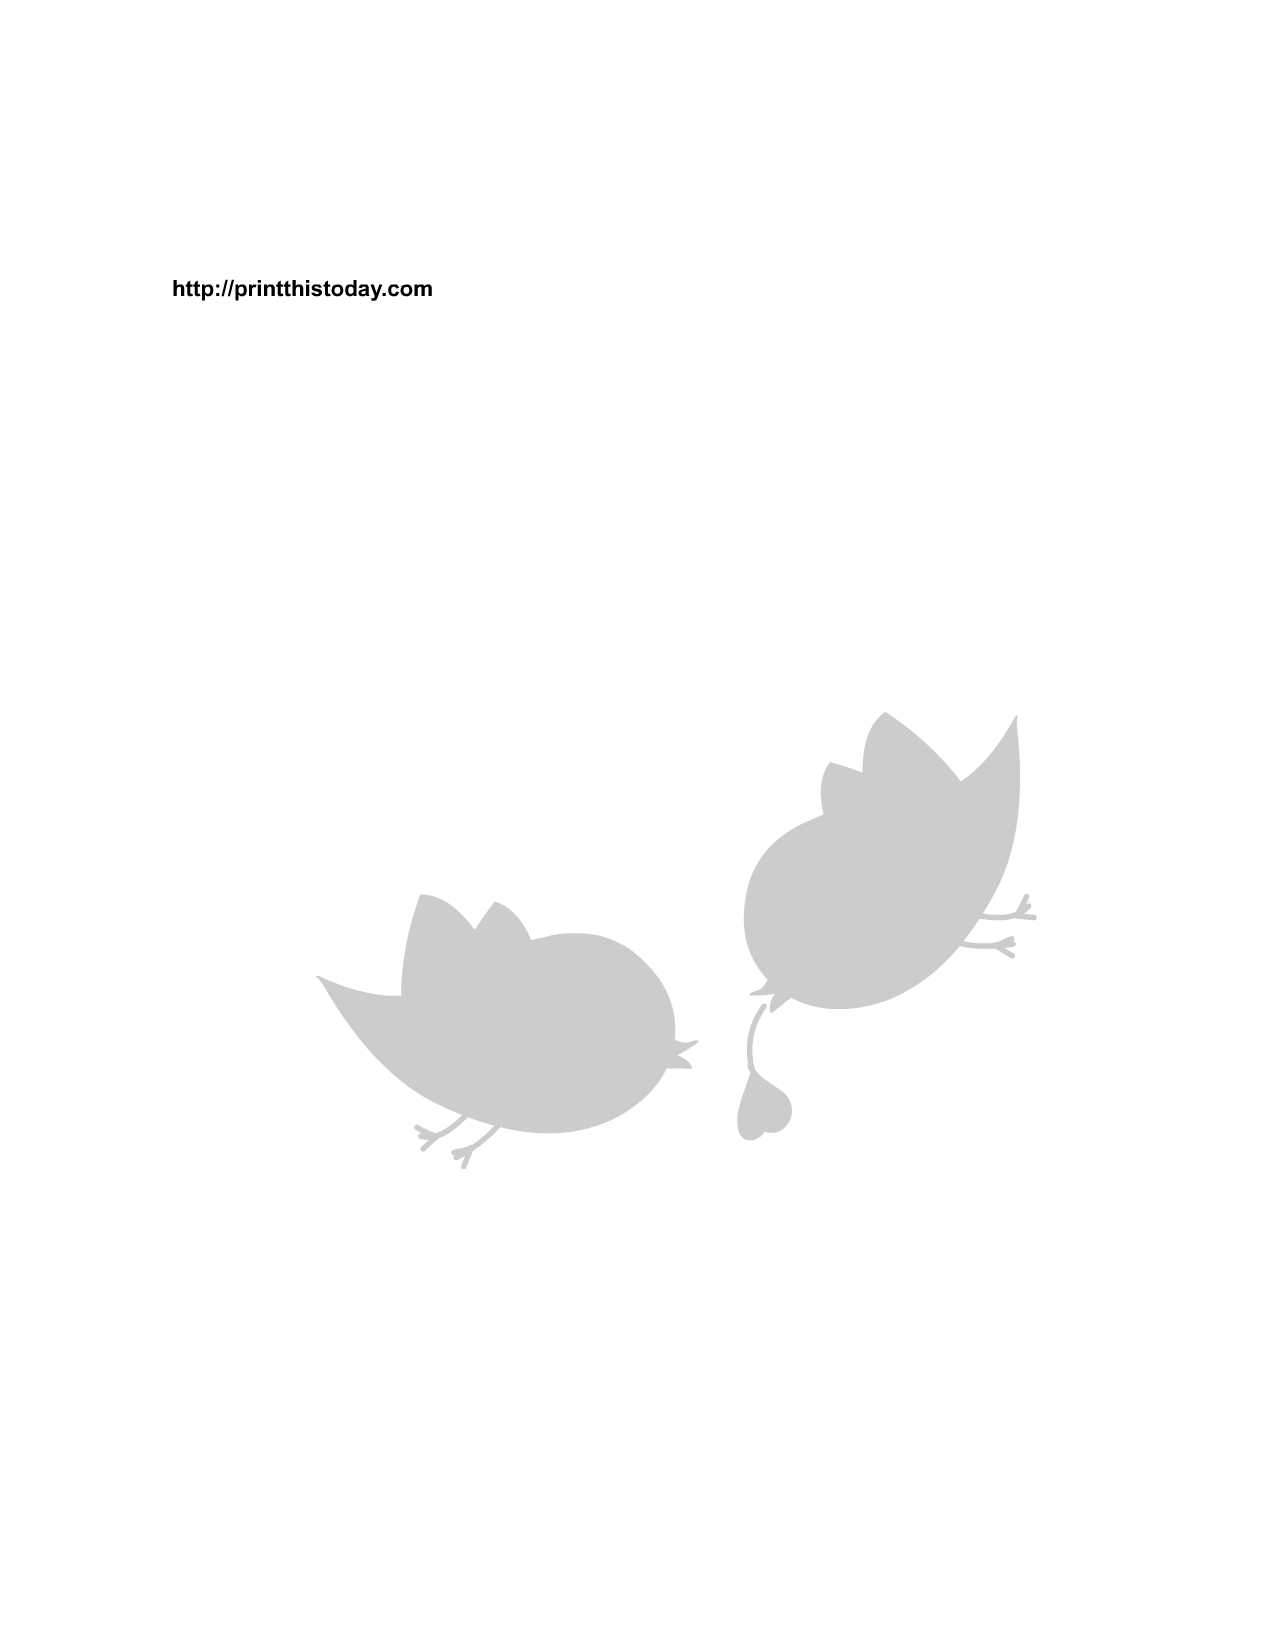 4 Images of Love Bird Stencils Printable